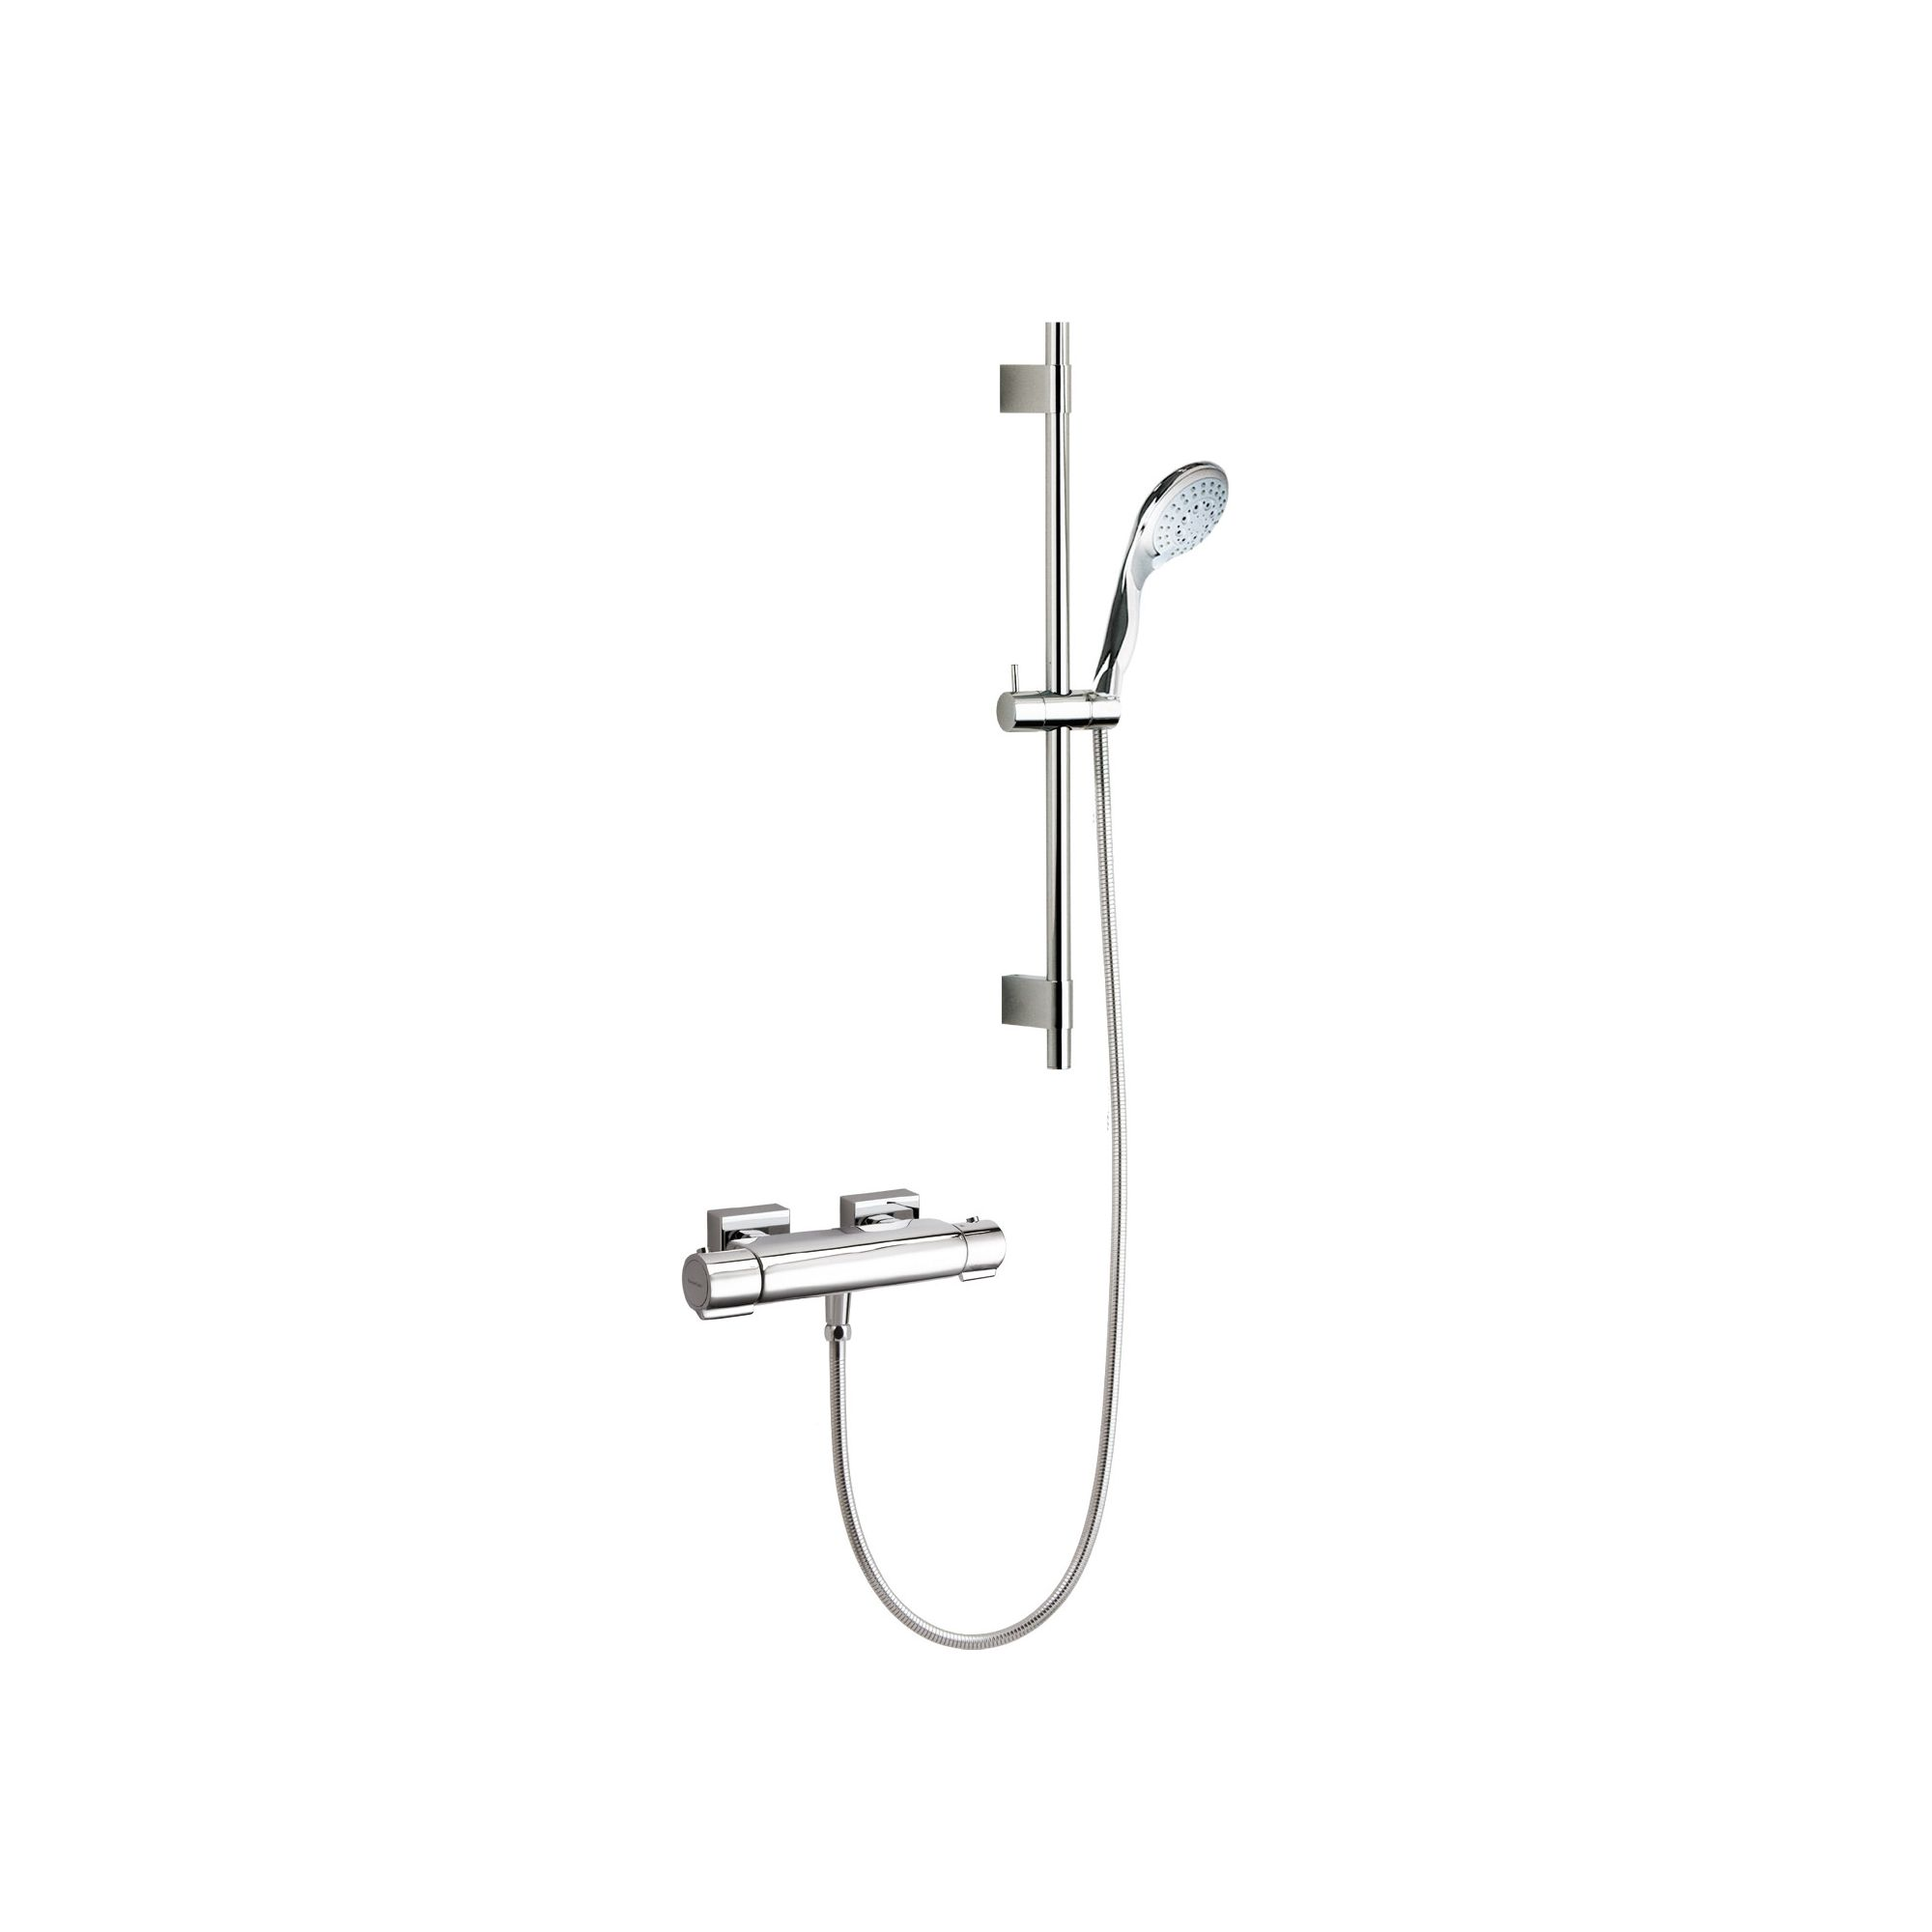 Ramon Soler Thermoarola Exposed Thermostatic Bath/Shower Mixer with Jupiter Shower Kit at Tesco Direct